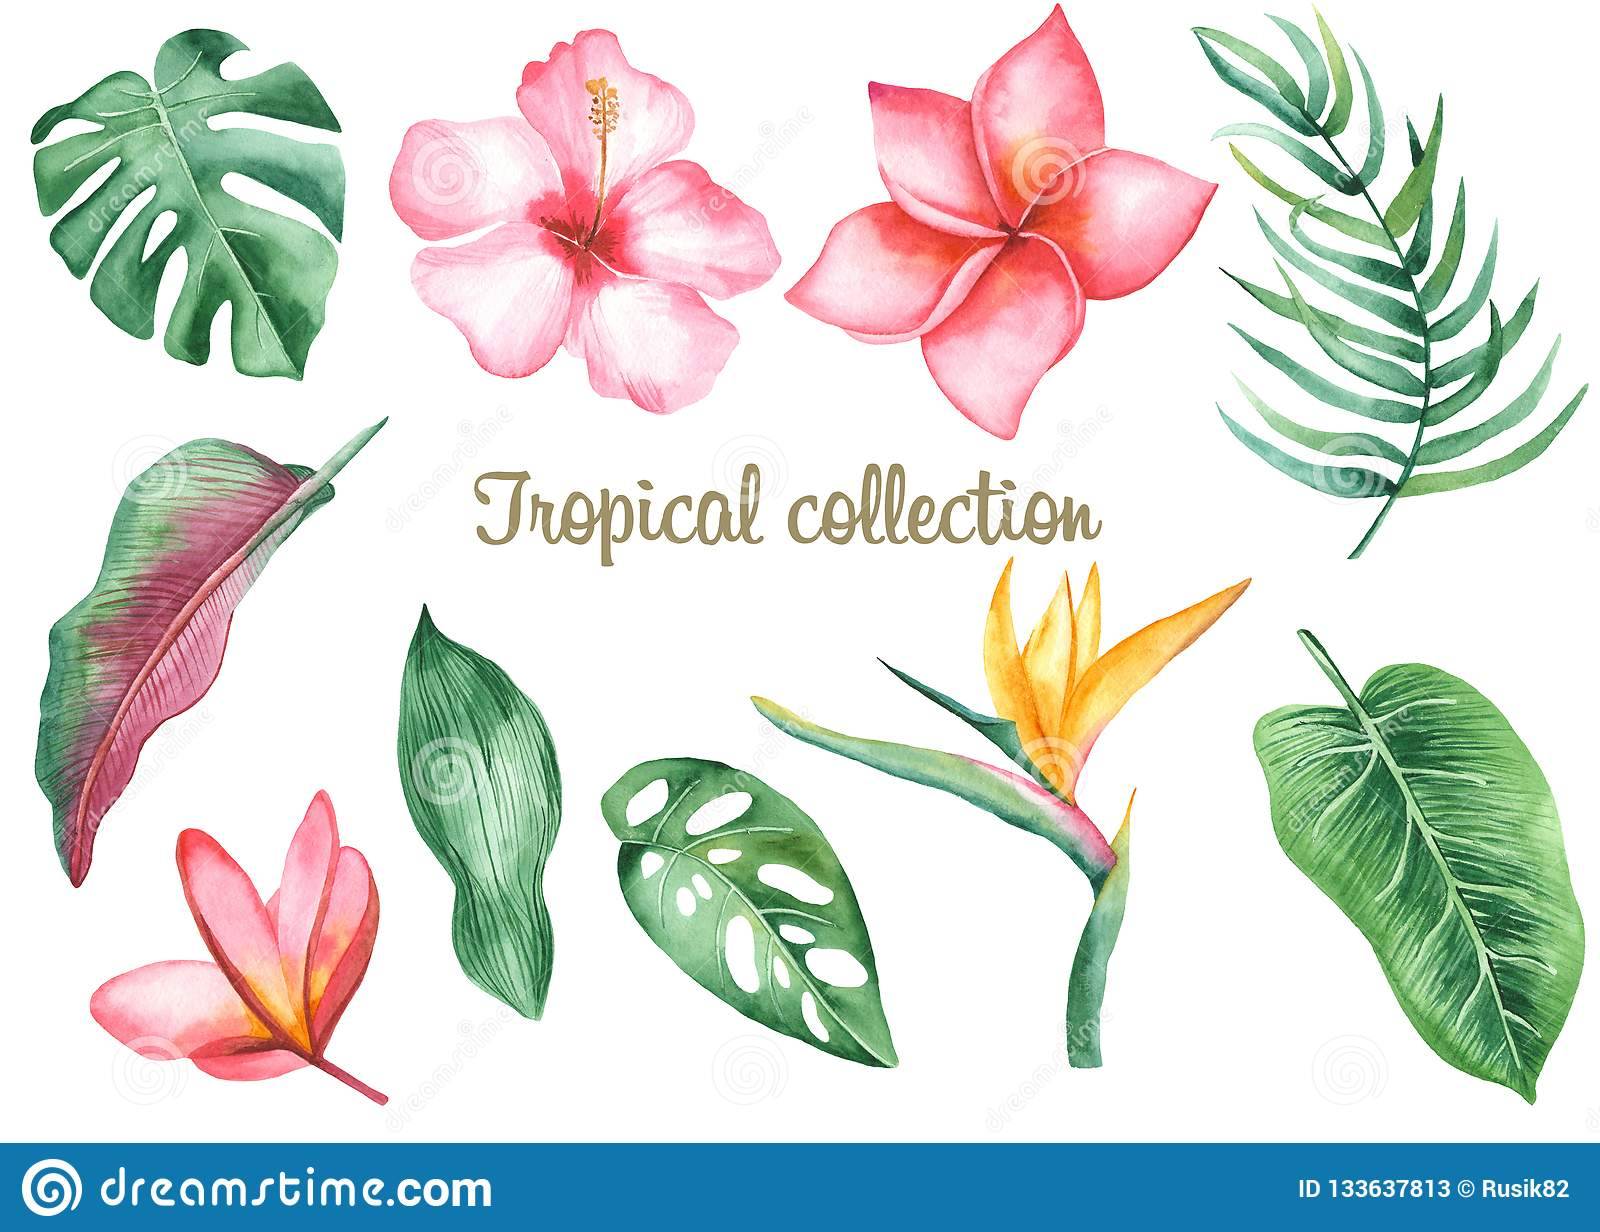 Watercolor Tropical Leaves And Flowers Stock Illustration Illustration Of Garden Flowers 133637813 Find & download free graphic resources for tropical flower. https www dreamstime com watercolor tropical leaves flowers watercolor tropical leaves flowers banana monstera plumeria protea heliconia hibiscus image133637813